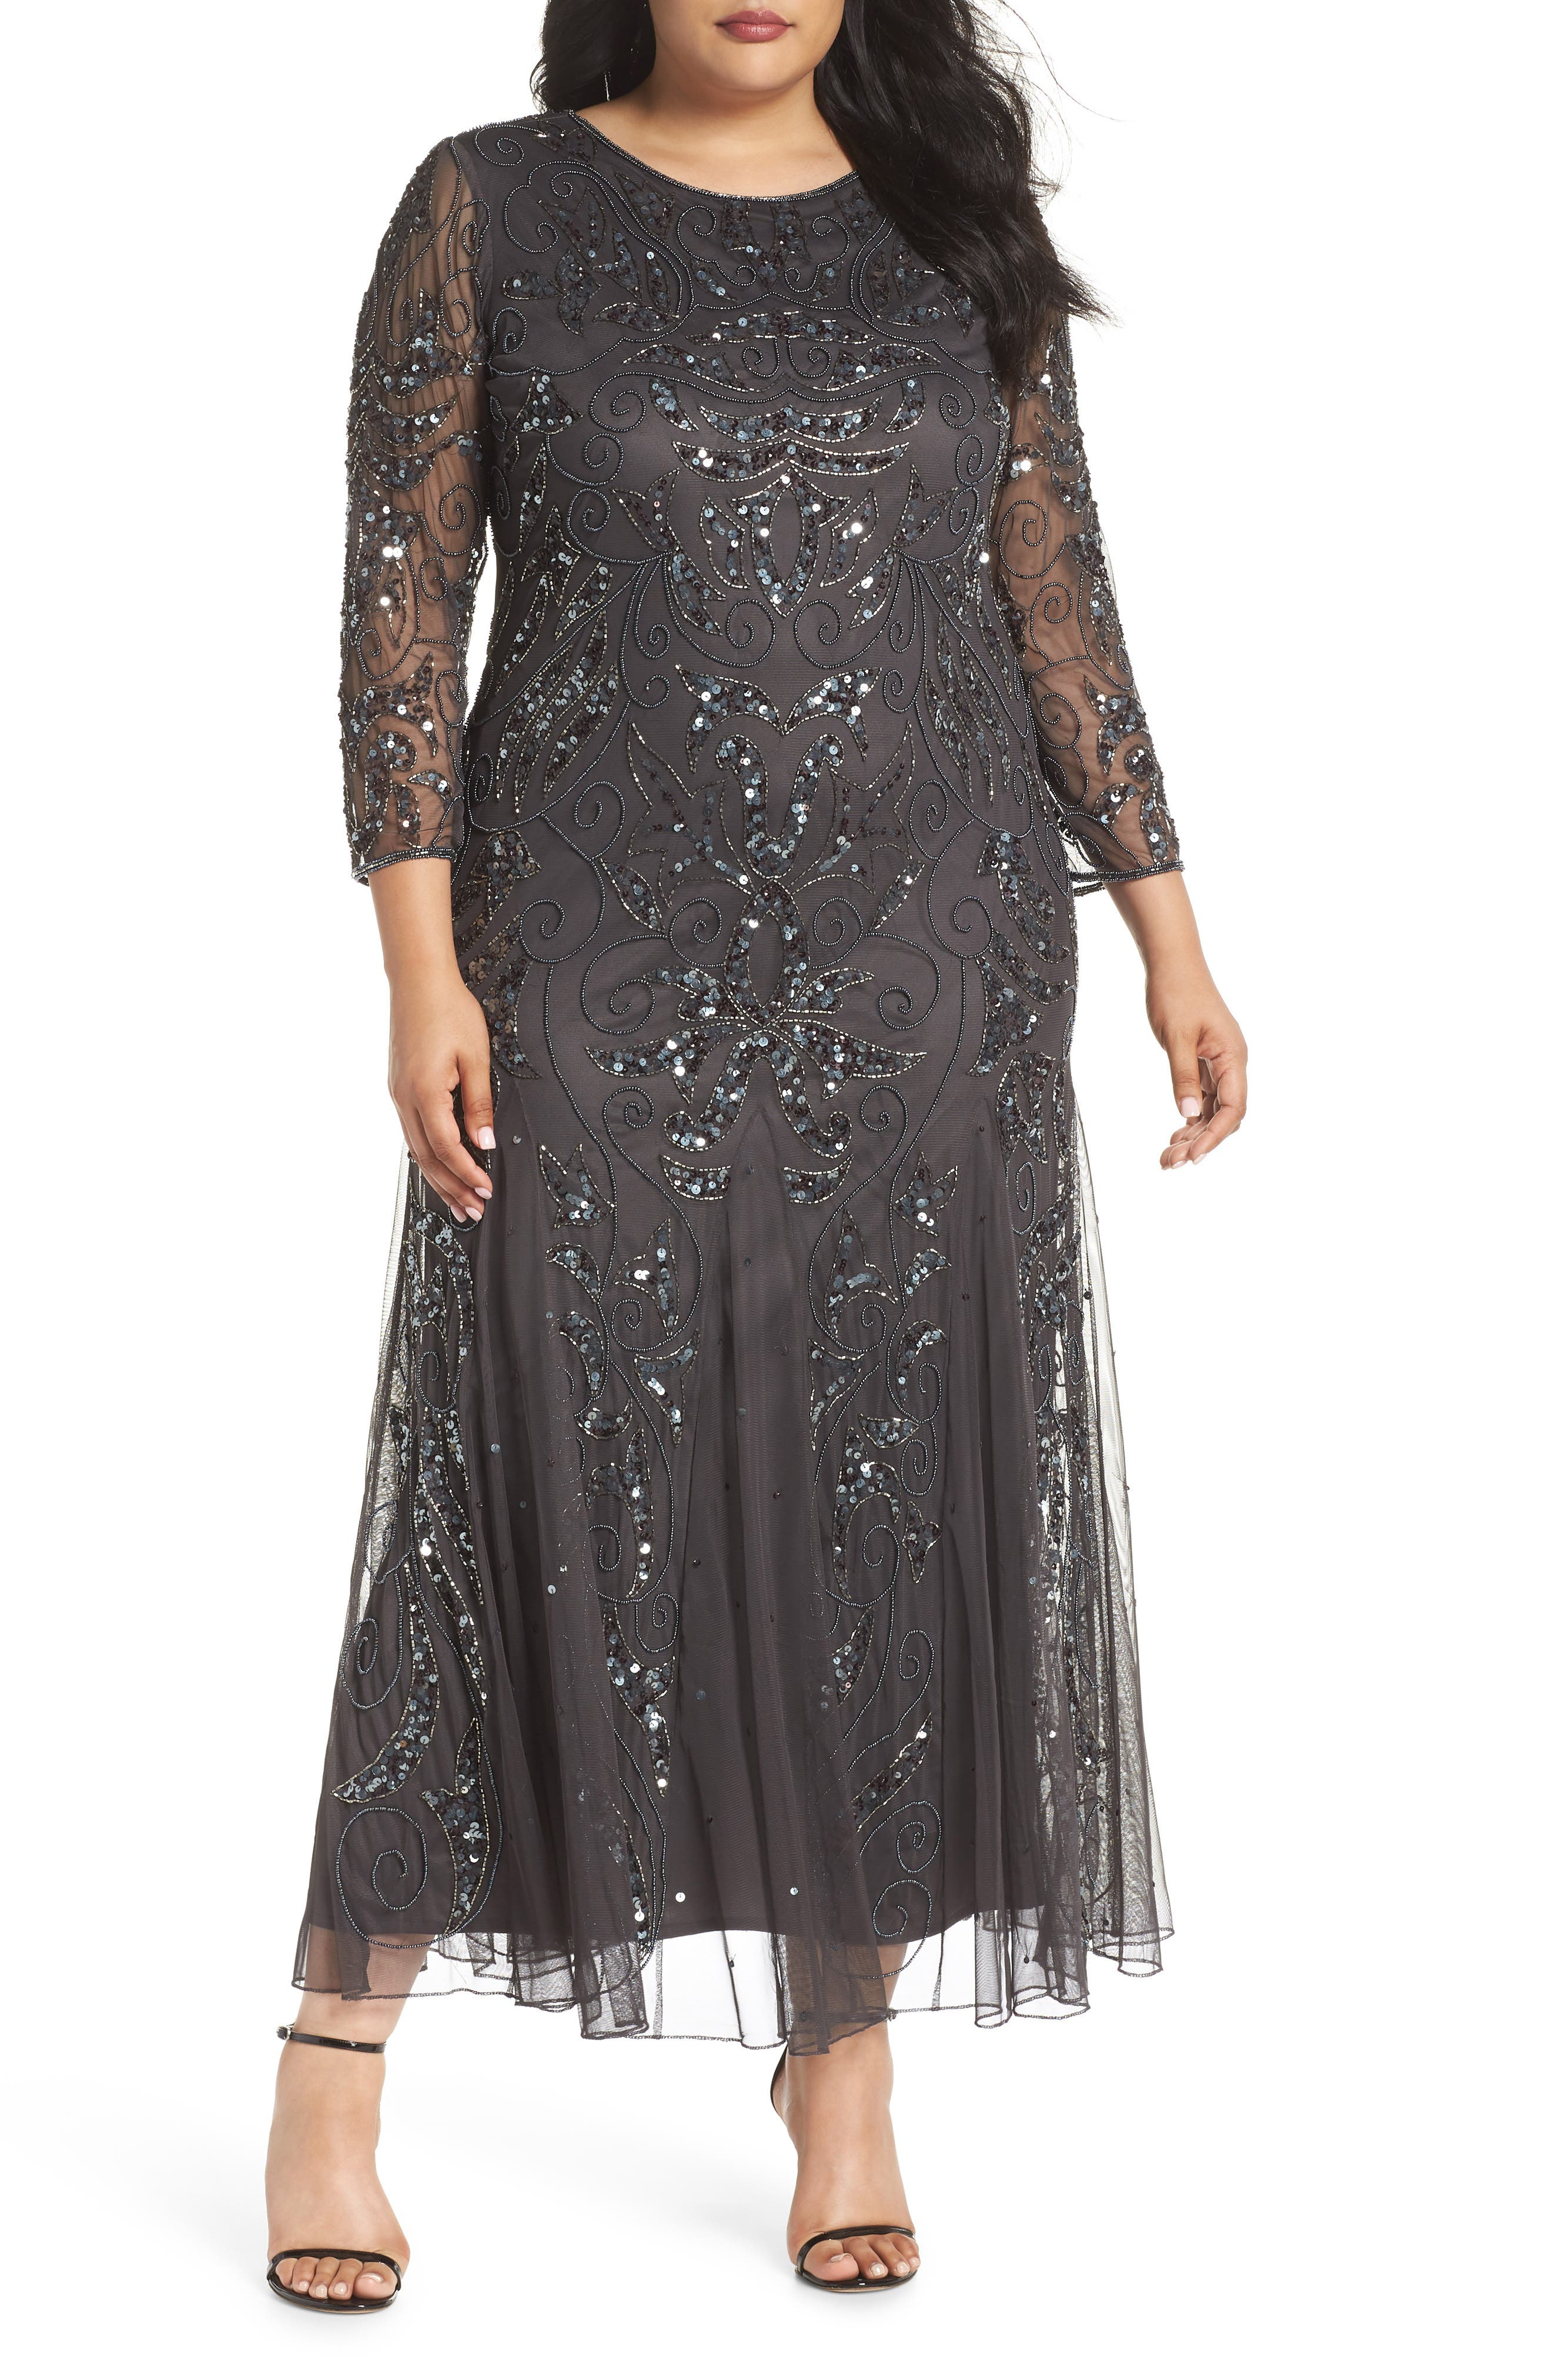 1920s Plus Size Flapper Dresses, Gatsby Dresses, Flapper Costumes Plus Size Womens Pisarro Nights Embellished Three Quarter Sleeve Gown Size 16W - Grey $238.00 AT vintagedancer.com